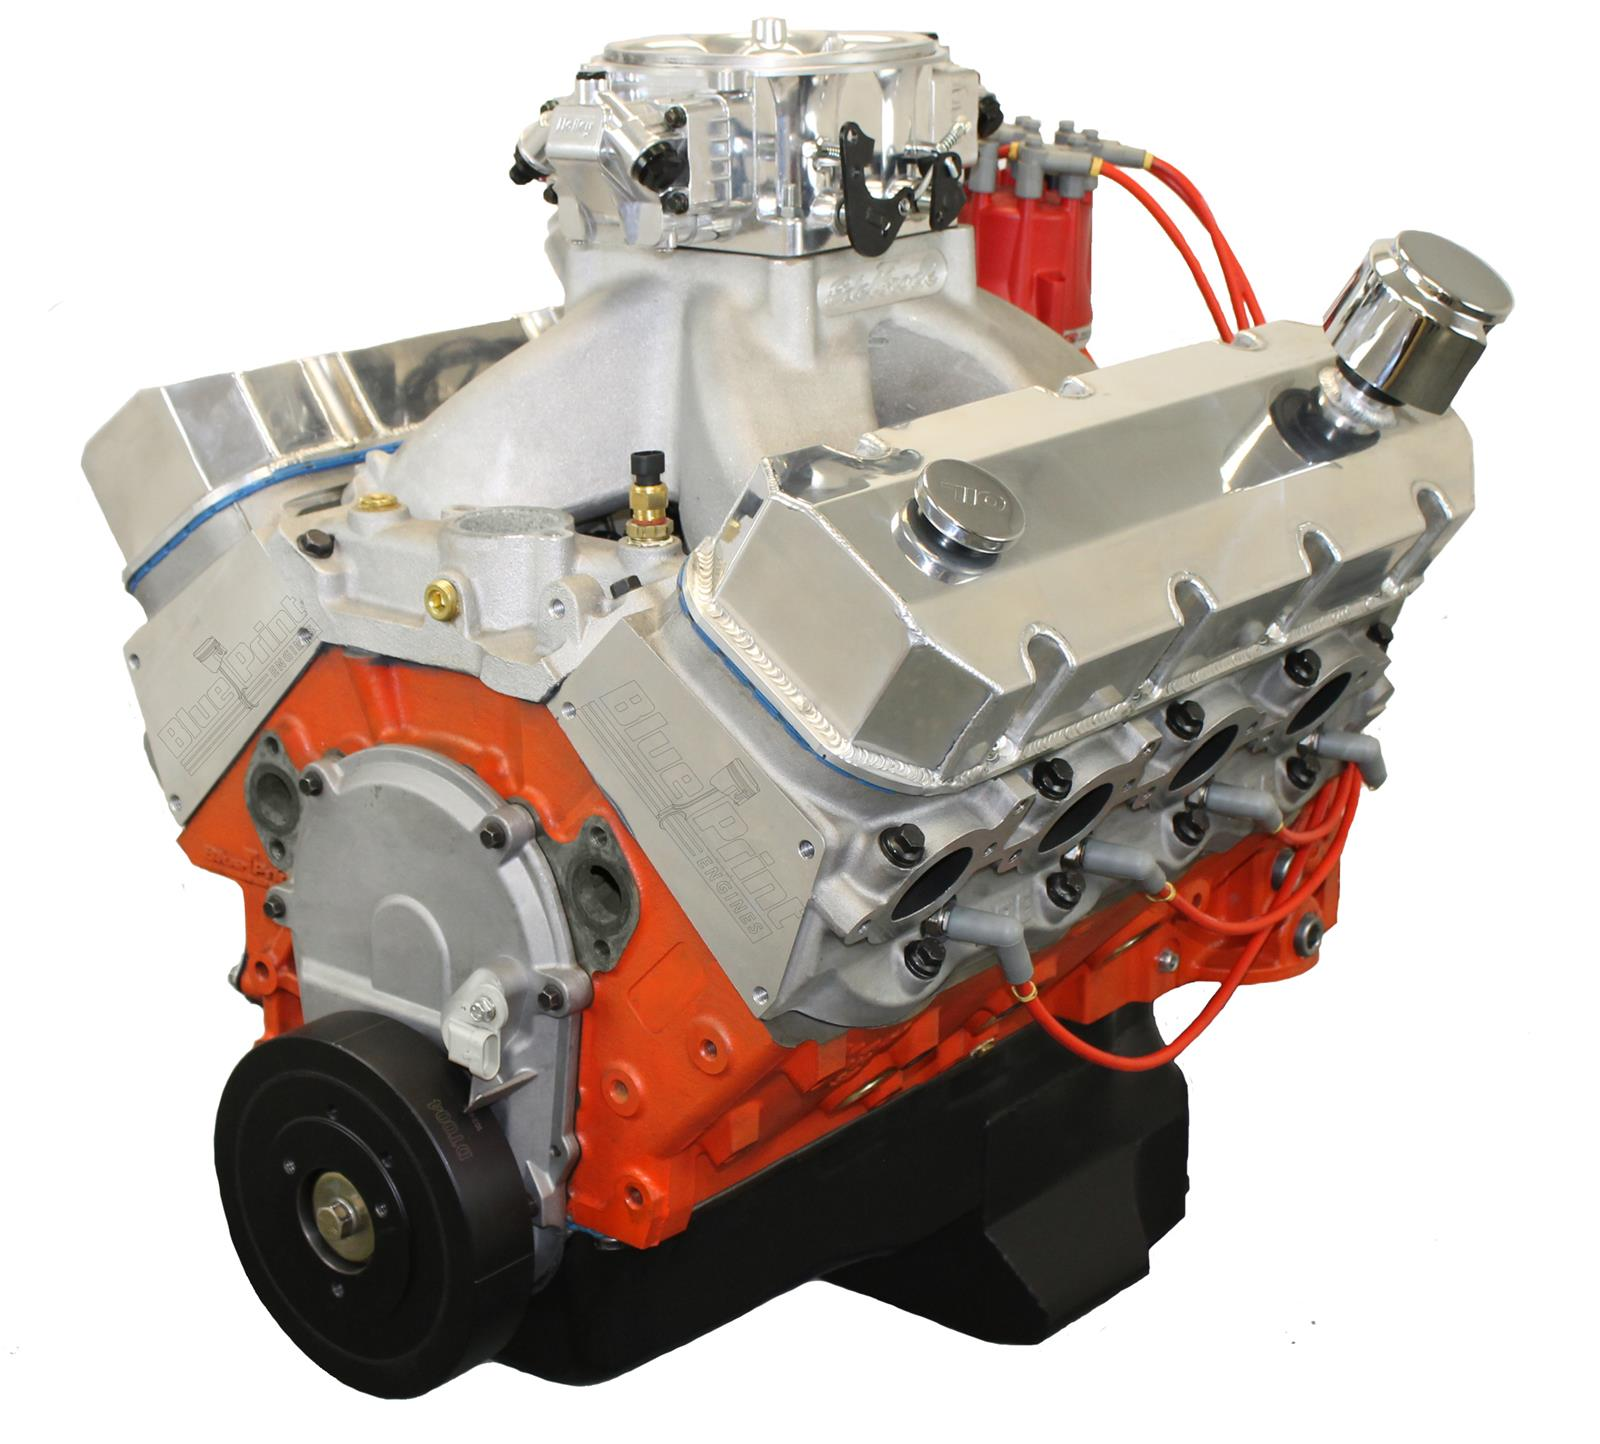 hight resolution of blueprint engines pro series chevy 632 c i d 815 hp dressed long block crate engines ps6320ctf1